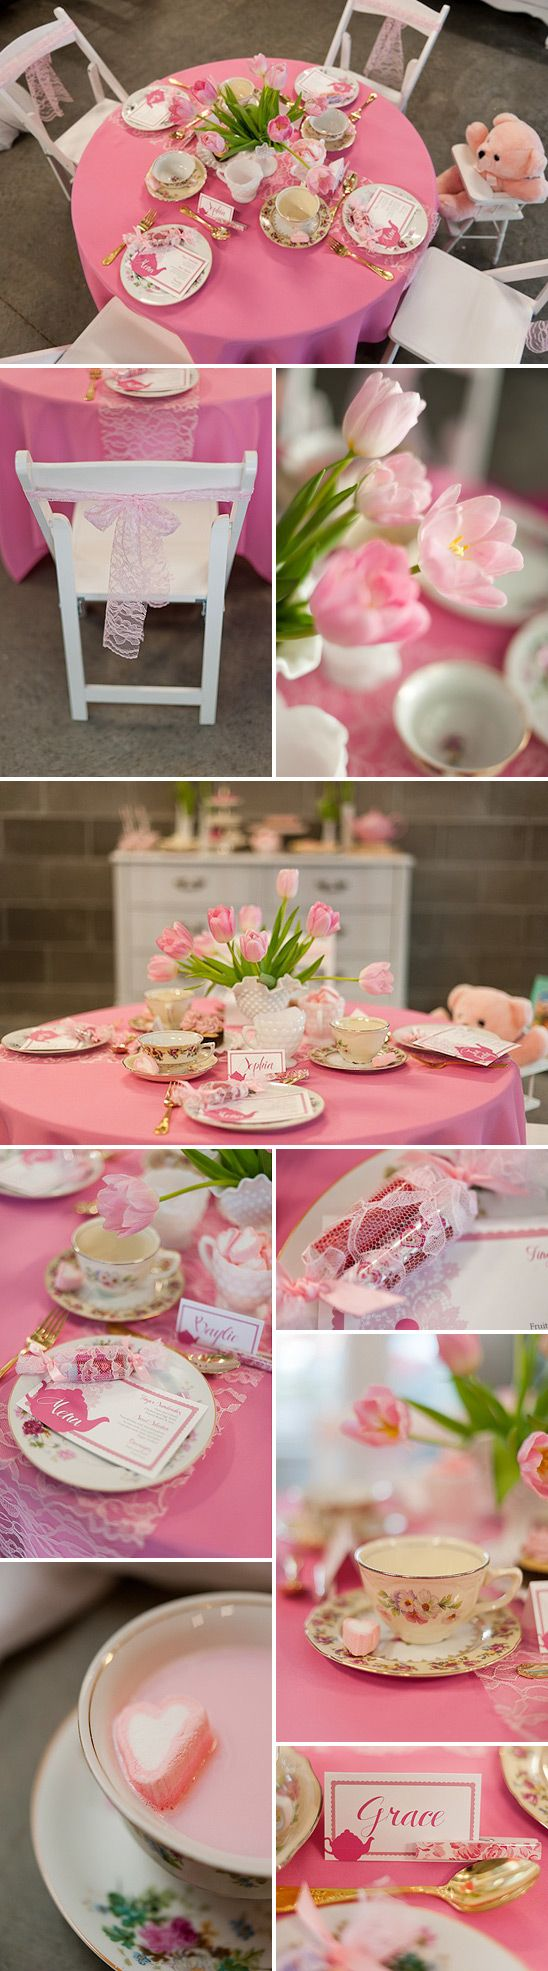 Adorable tea party birthday!